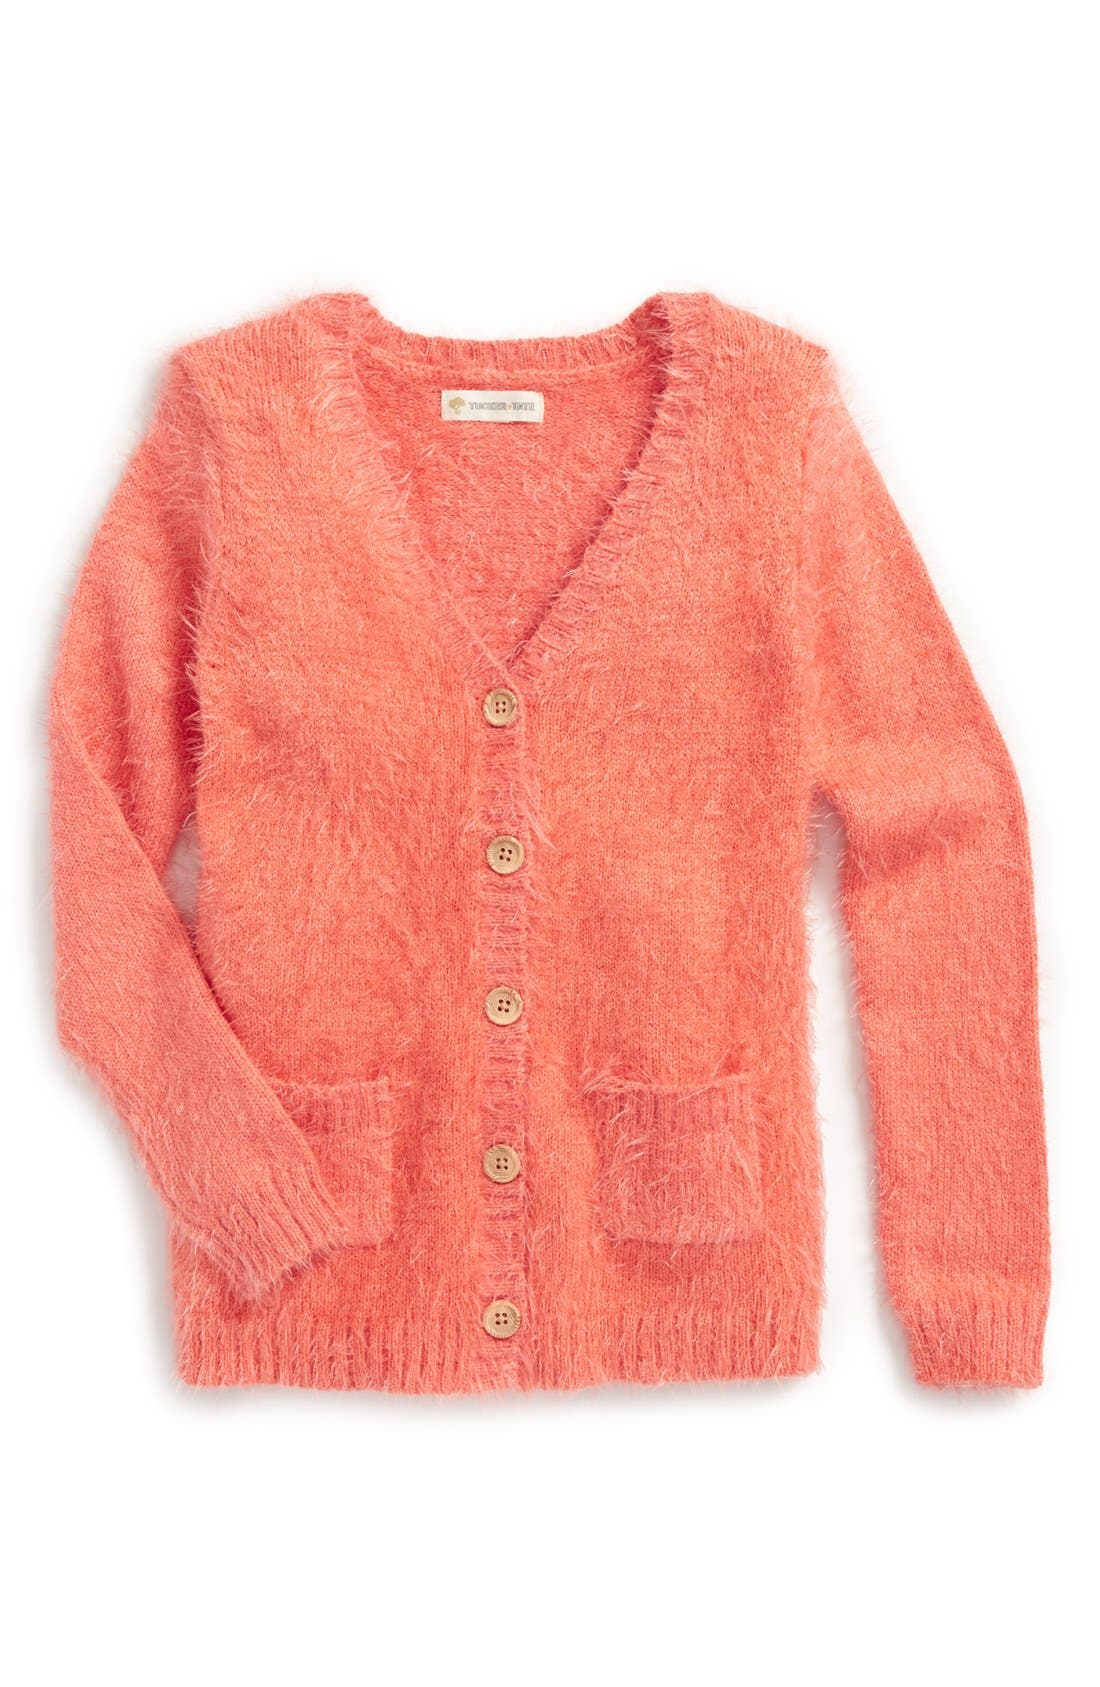 Main Image - Tucker + Tate 'Fluffy' Cardigan (Toddler Girls)